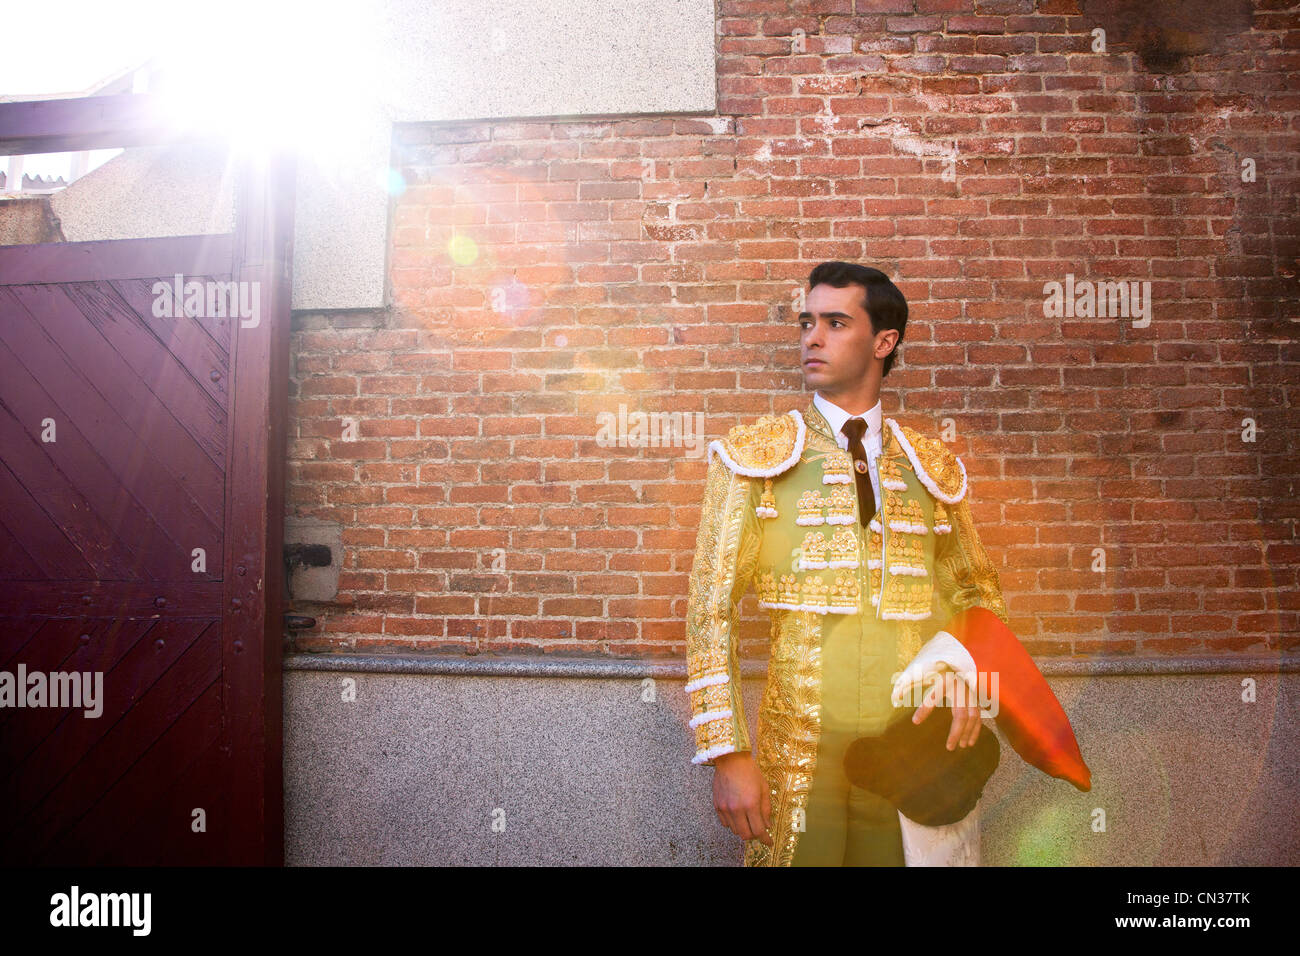 Bullfighter wearing traditional clothing at opening ceremony, Las Ventas bullring, Madrid Stock Photo